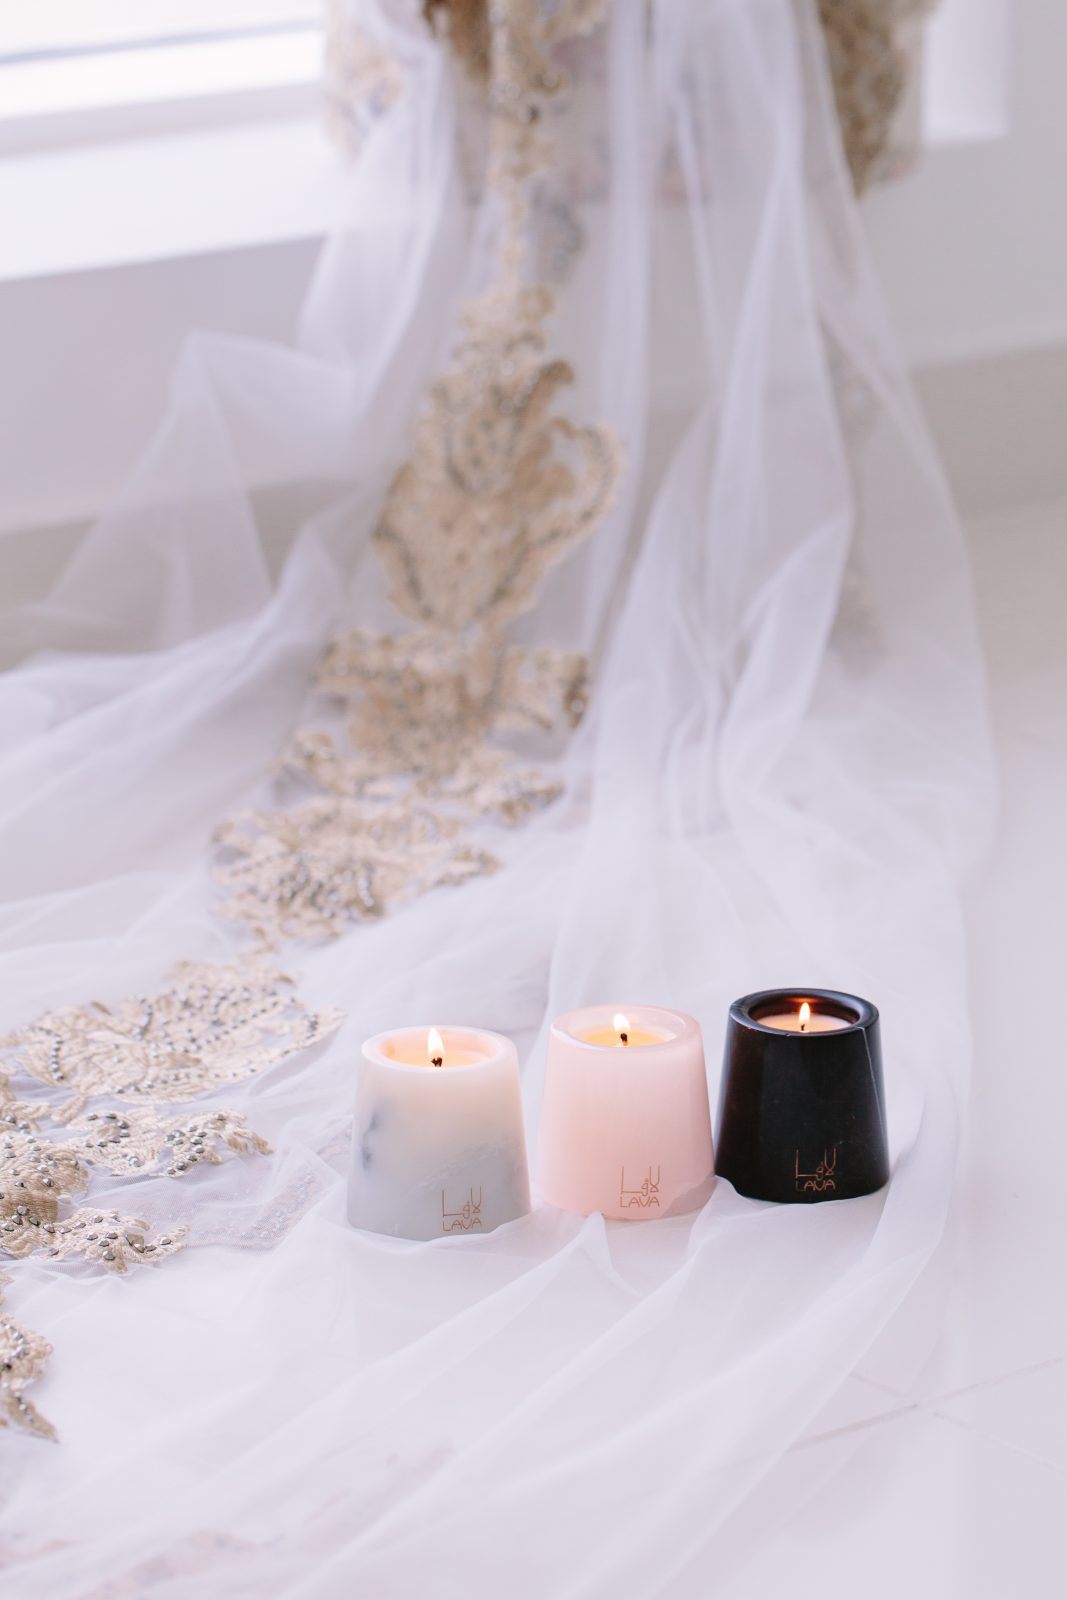 Lava Candles at the bottom of a wedding dress